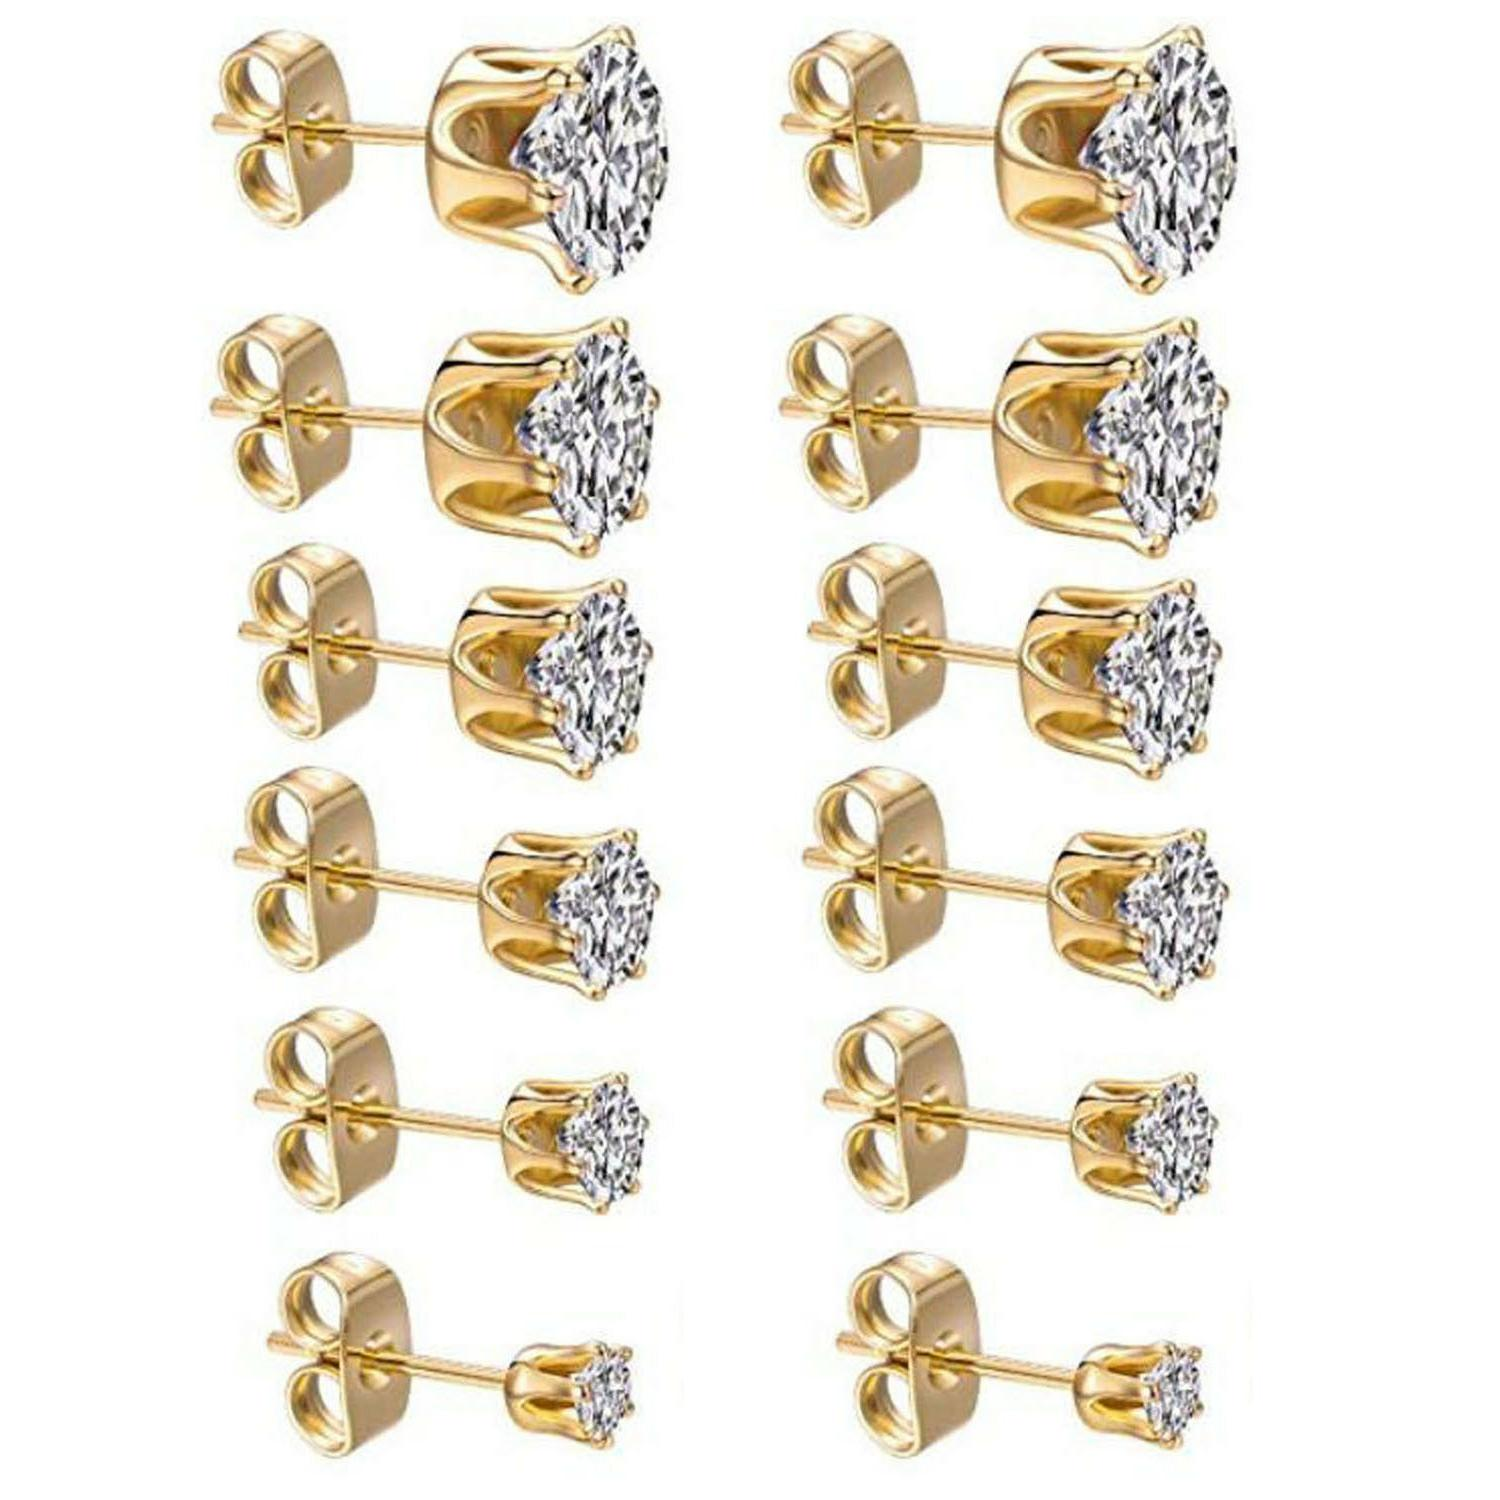 3mm 8mm women s stainless steel gold